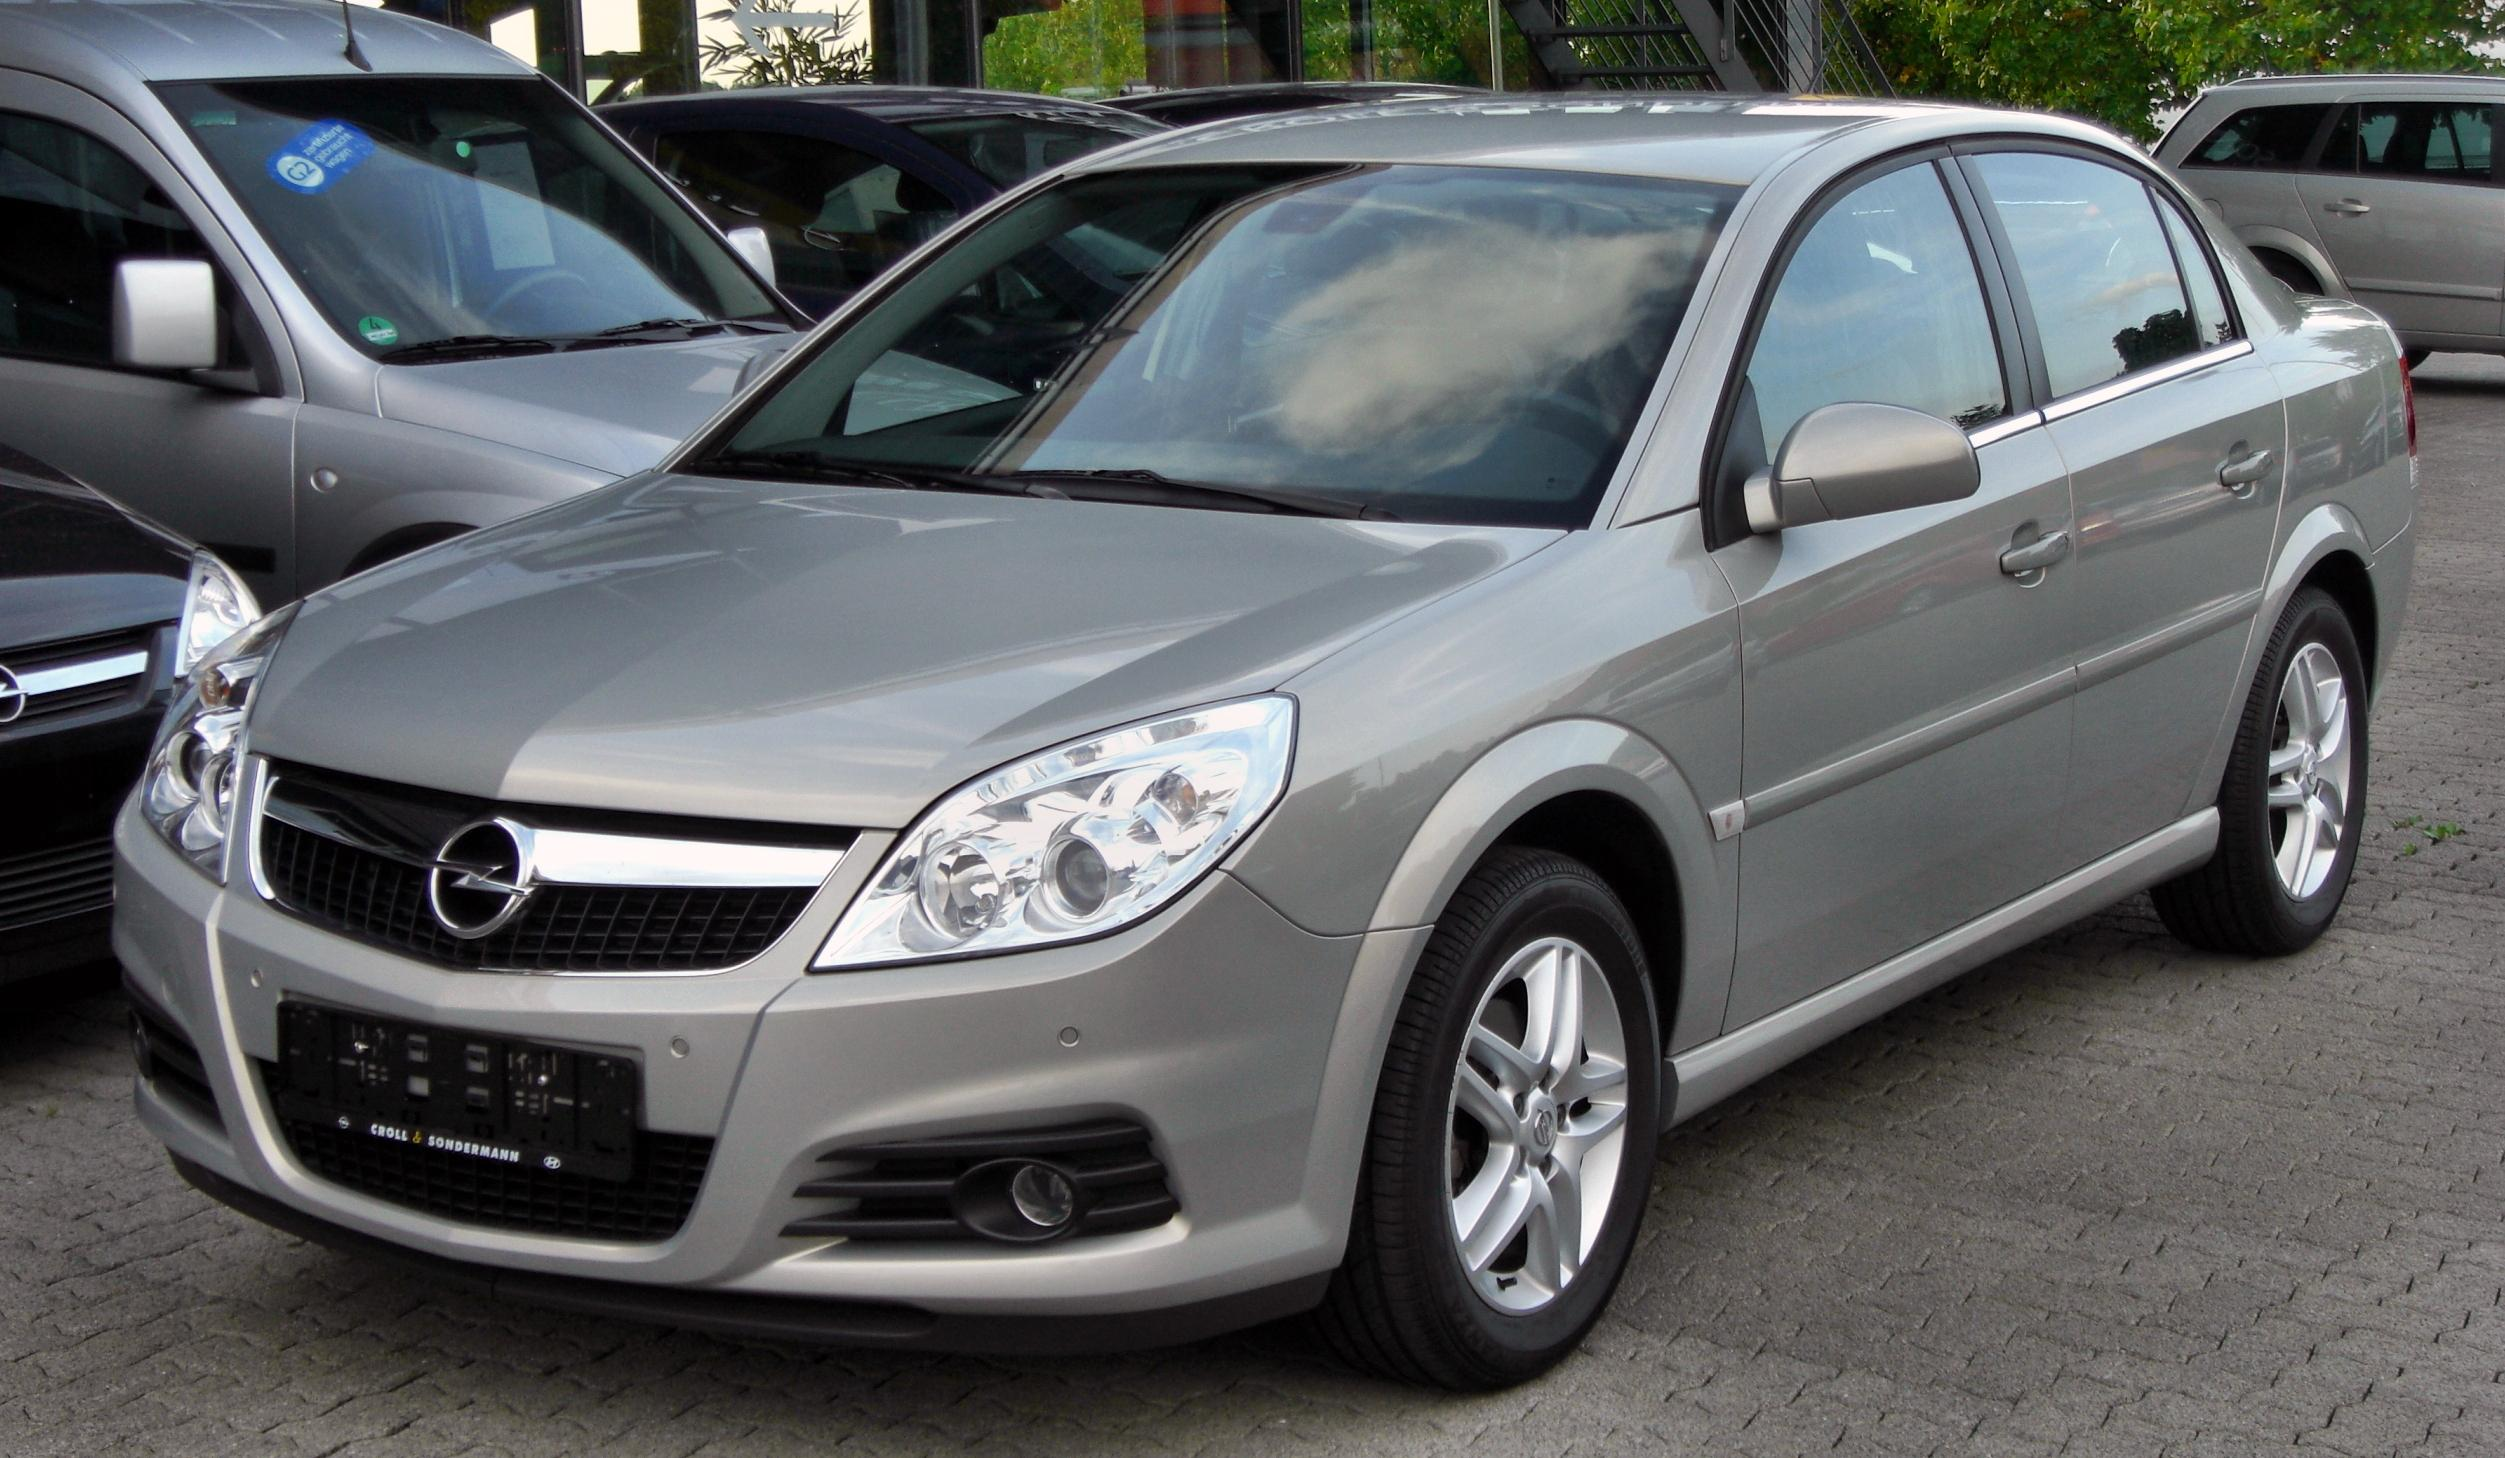 Illustration : OPEL - VECTRA 2.5 CDX V6